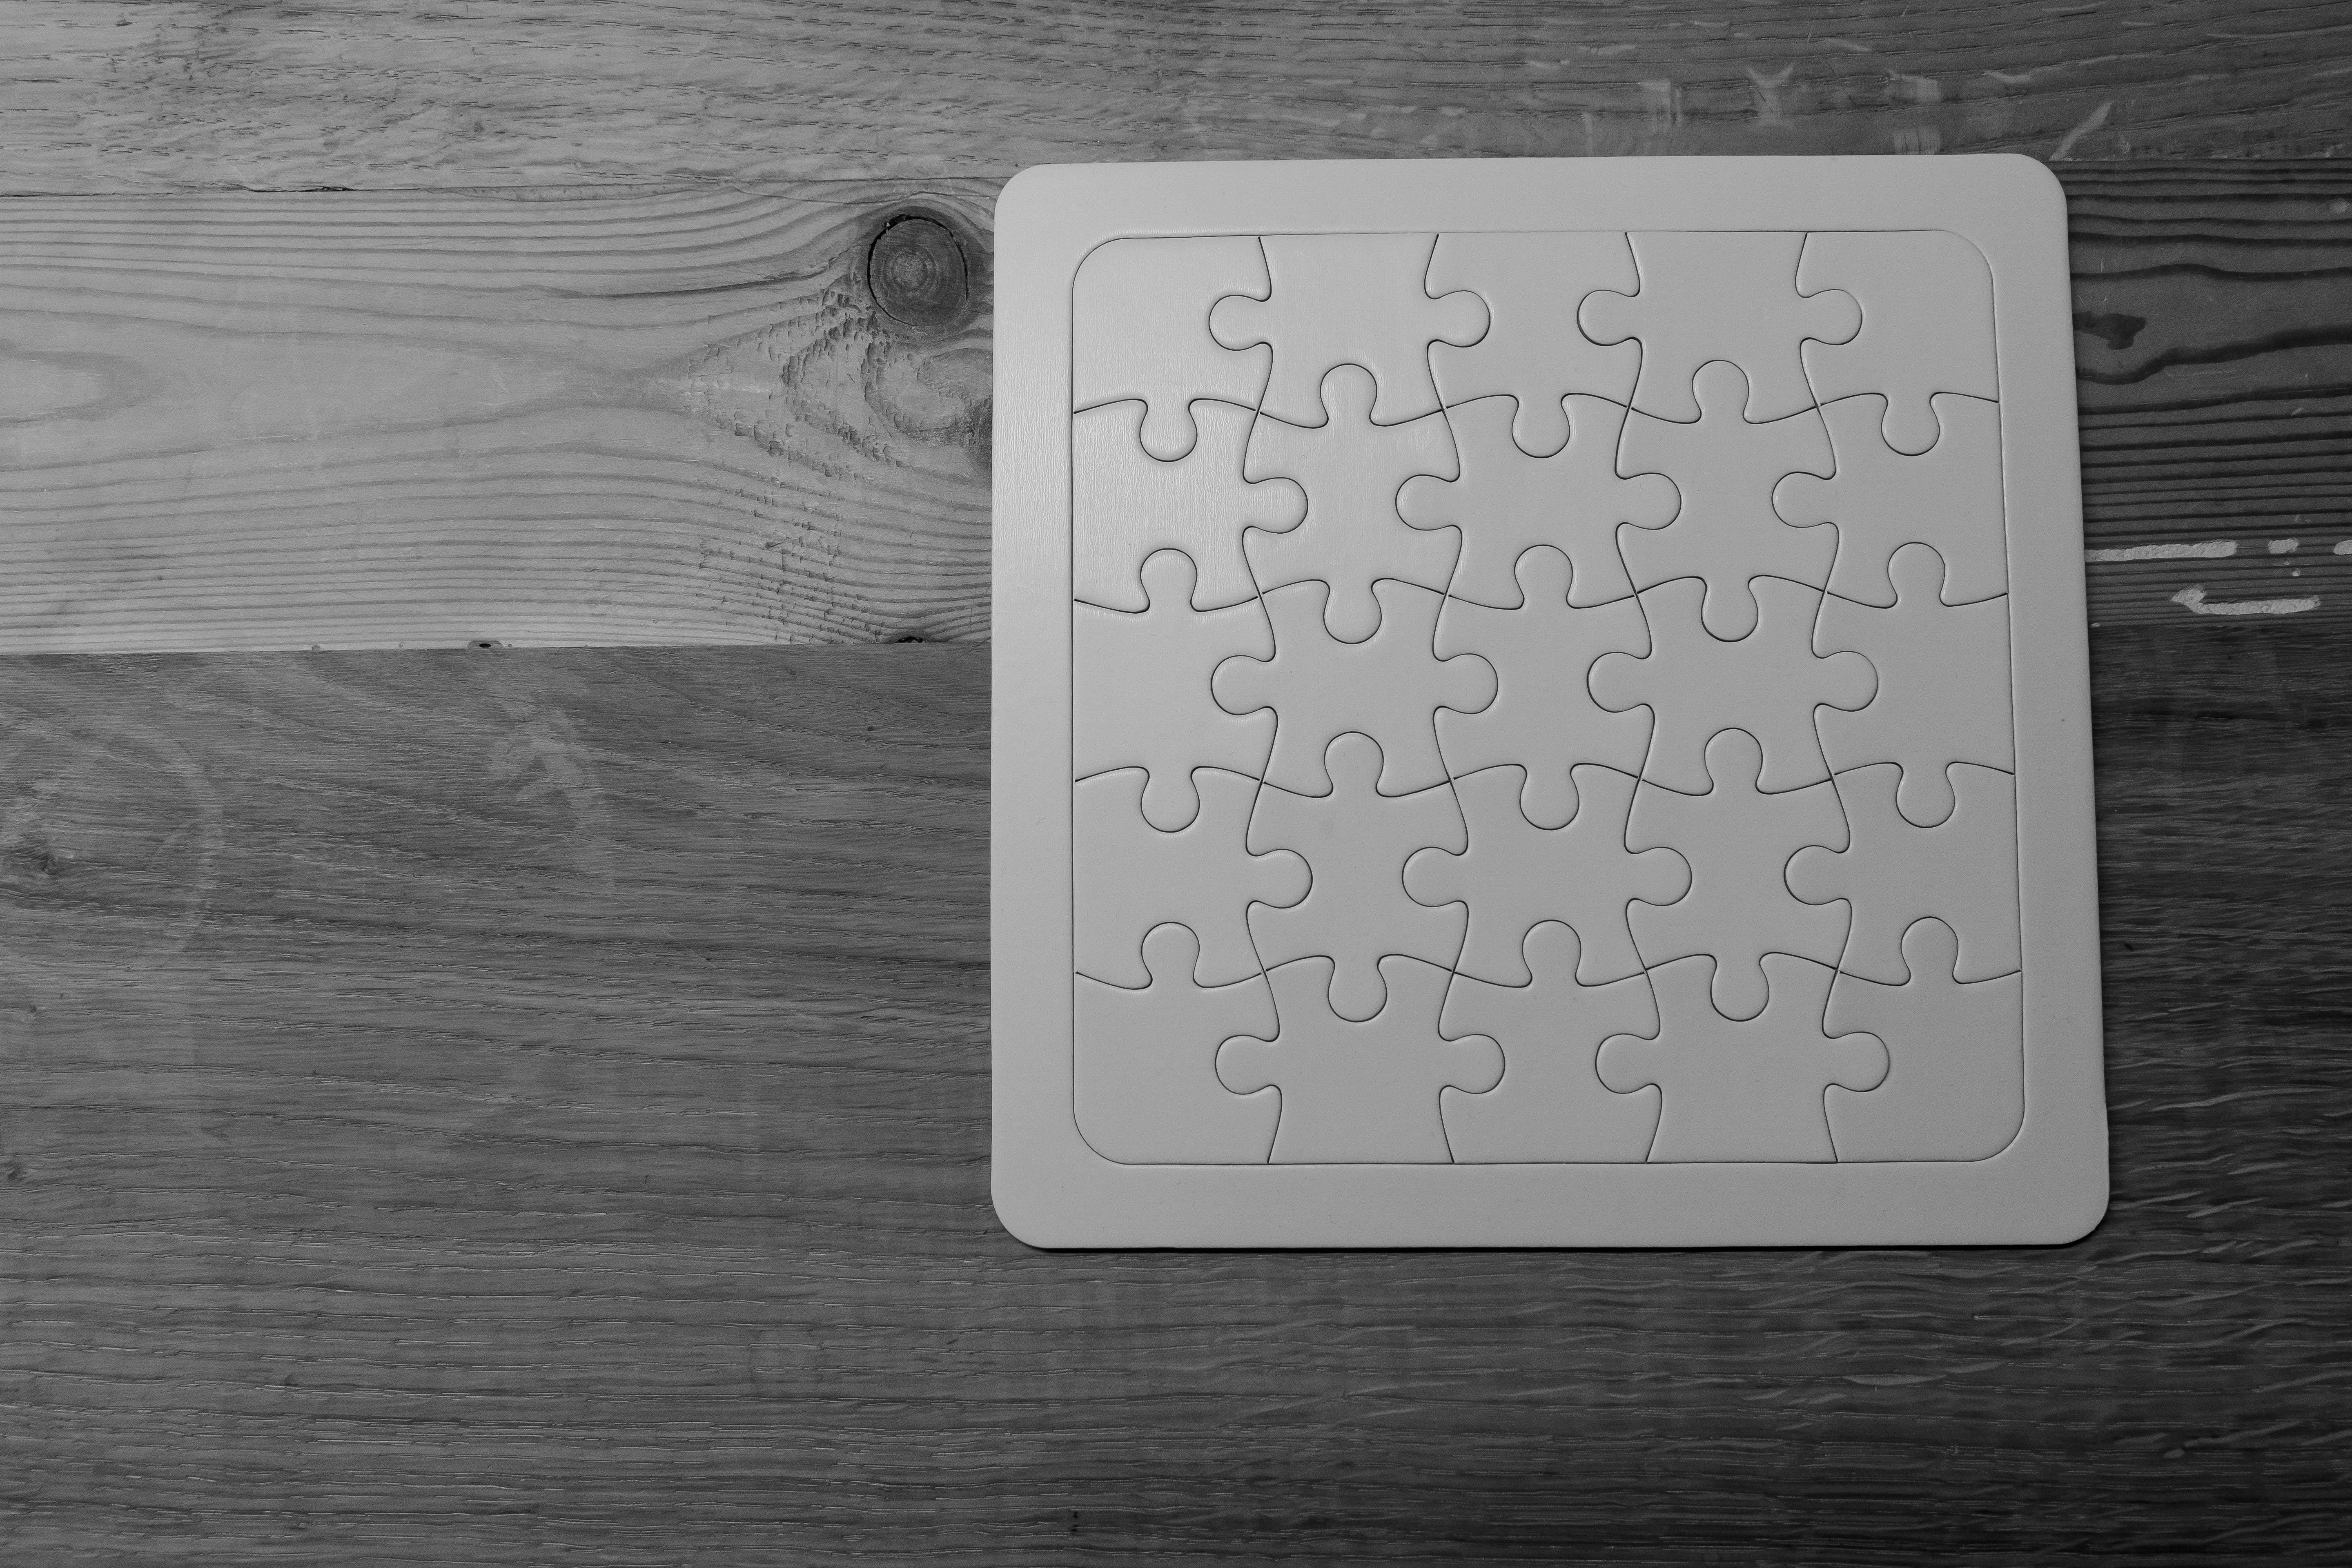 Gray Scale Photo of Jigsaw Puzzle